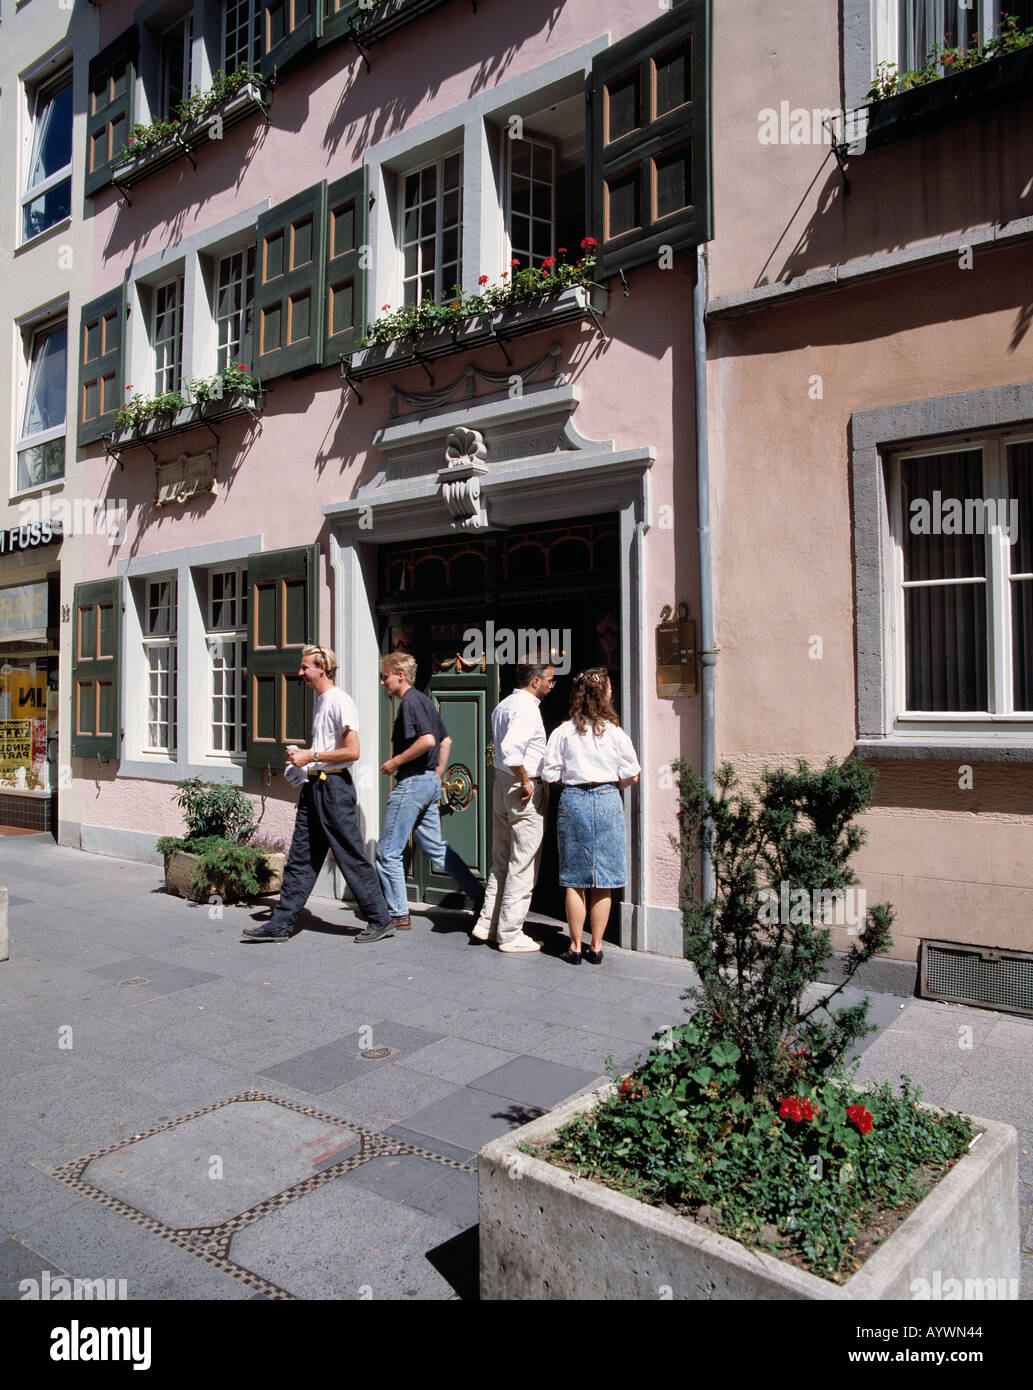 D-Bonn, Rhine, Rhineland, North Rhine-Westphalia, Beethoven birth house, people in front of the Beethoven birth house, Ludwig van Beethoven, museum, composer, culture, classical music - Stock Image